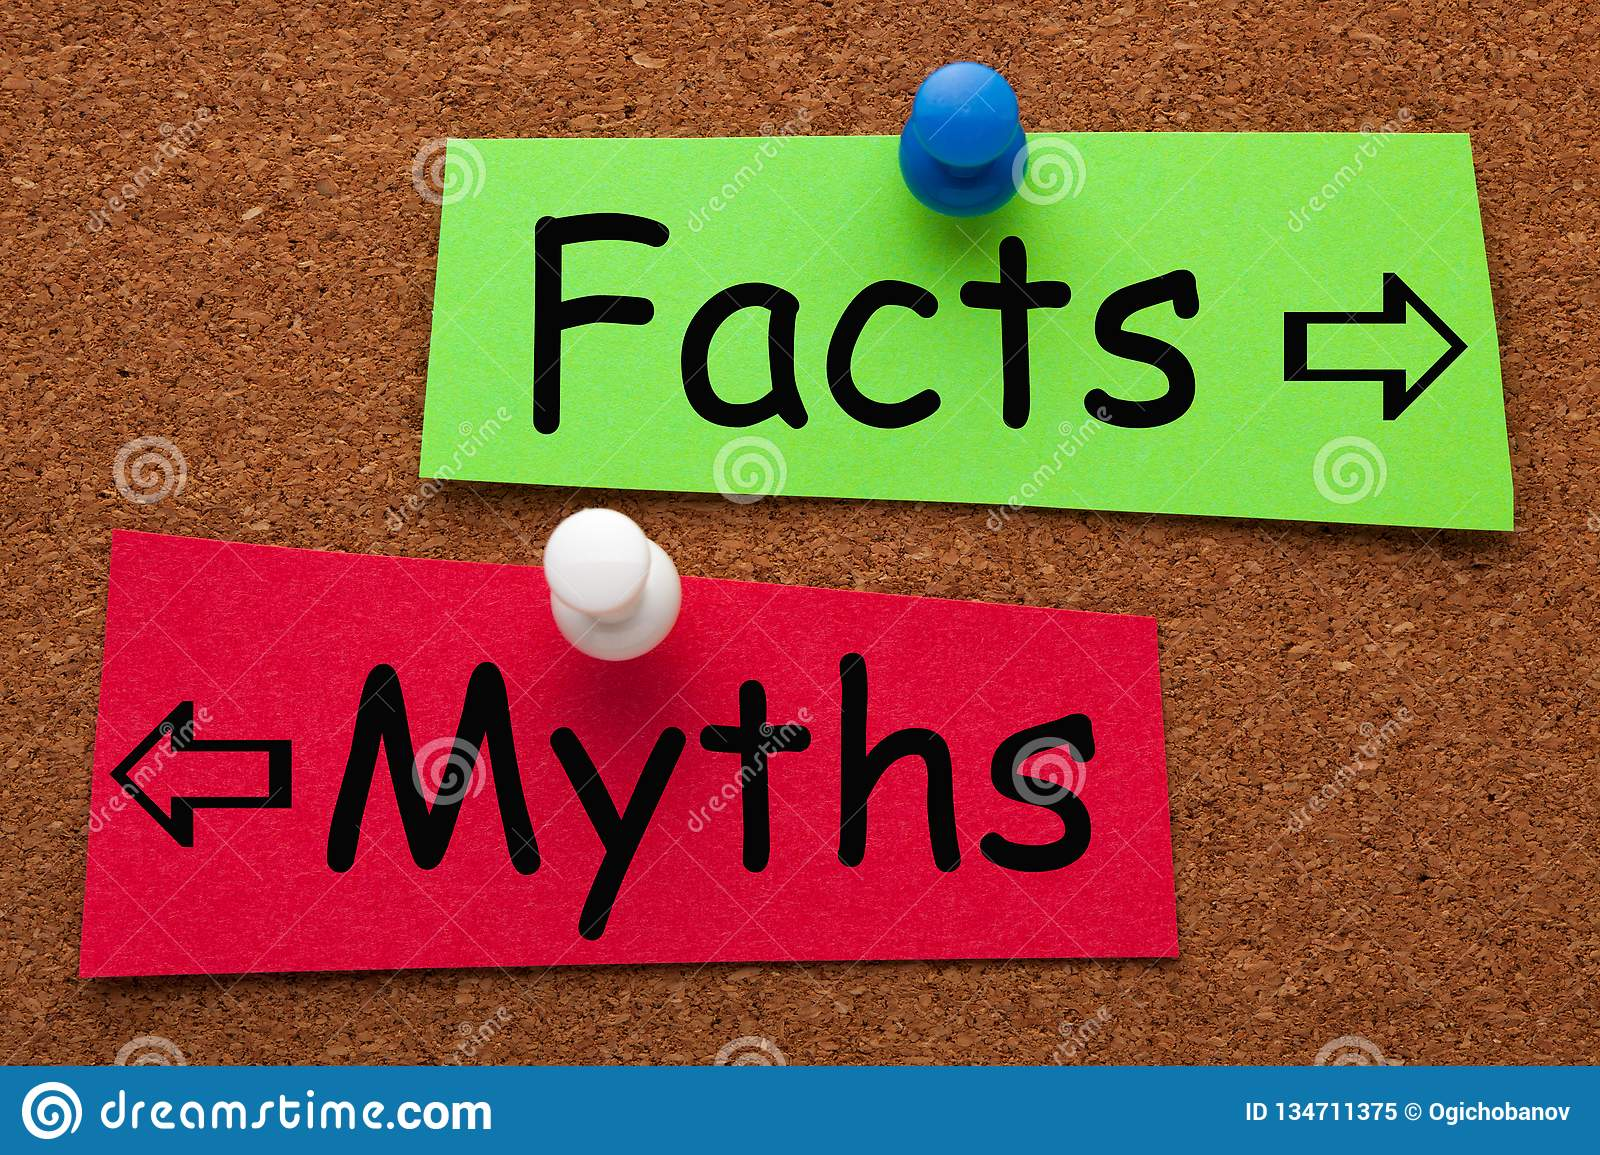 Facts Myths Concept stock image  Image of factual, fake - 134711375